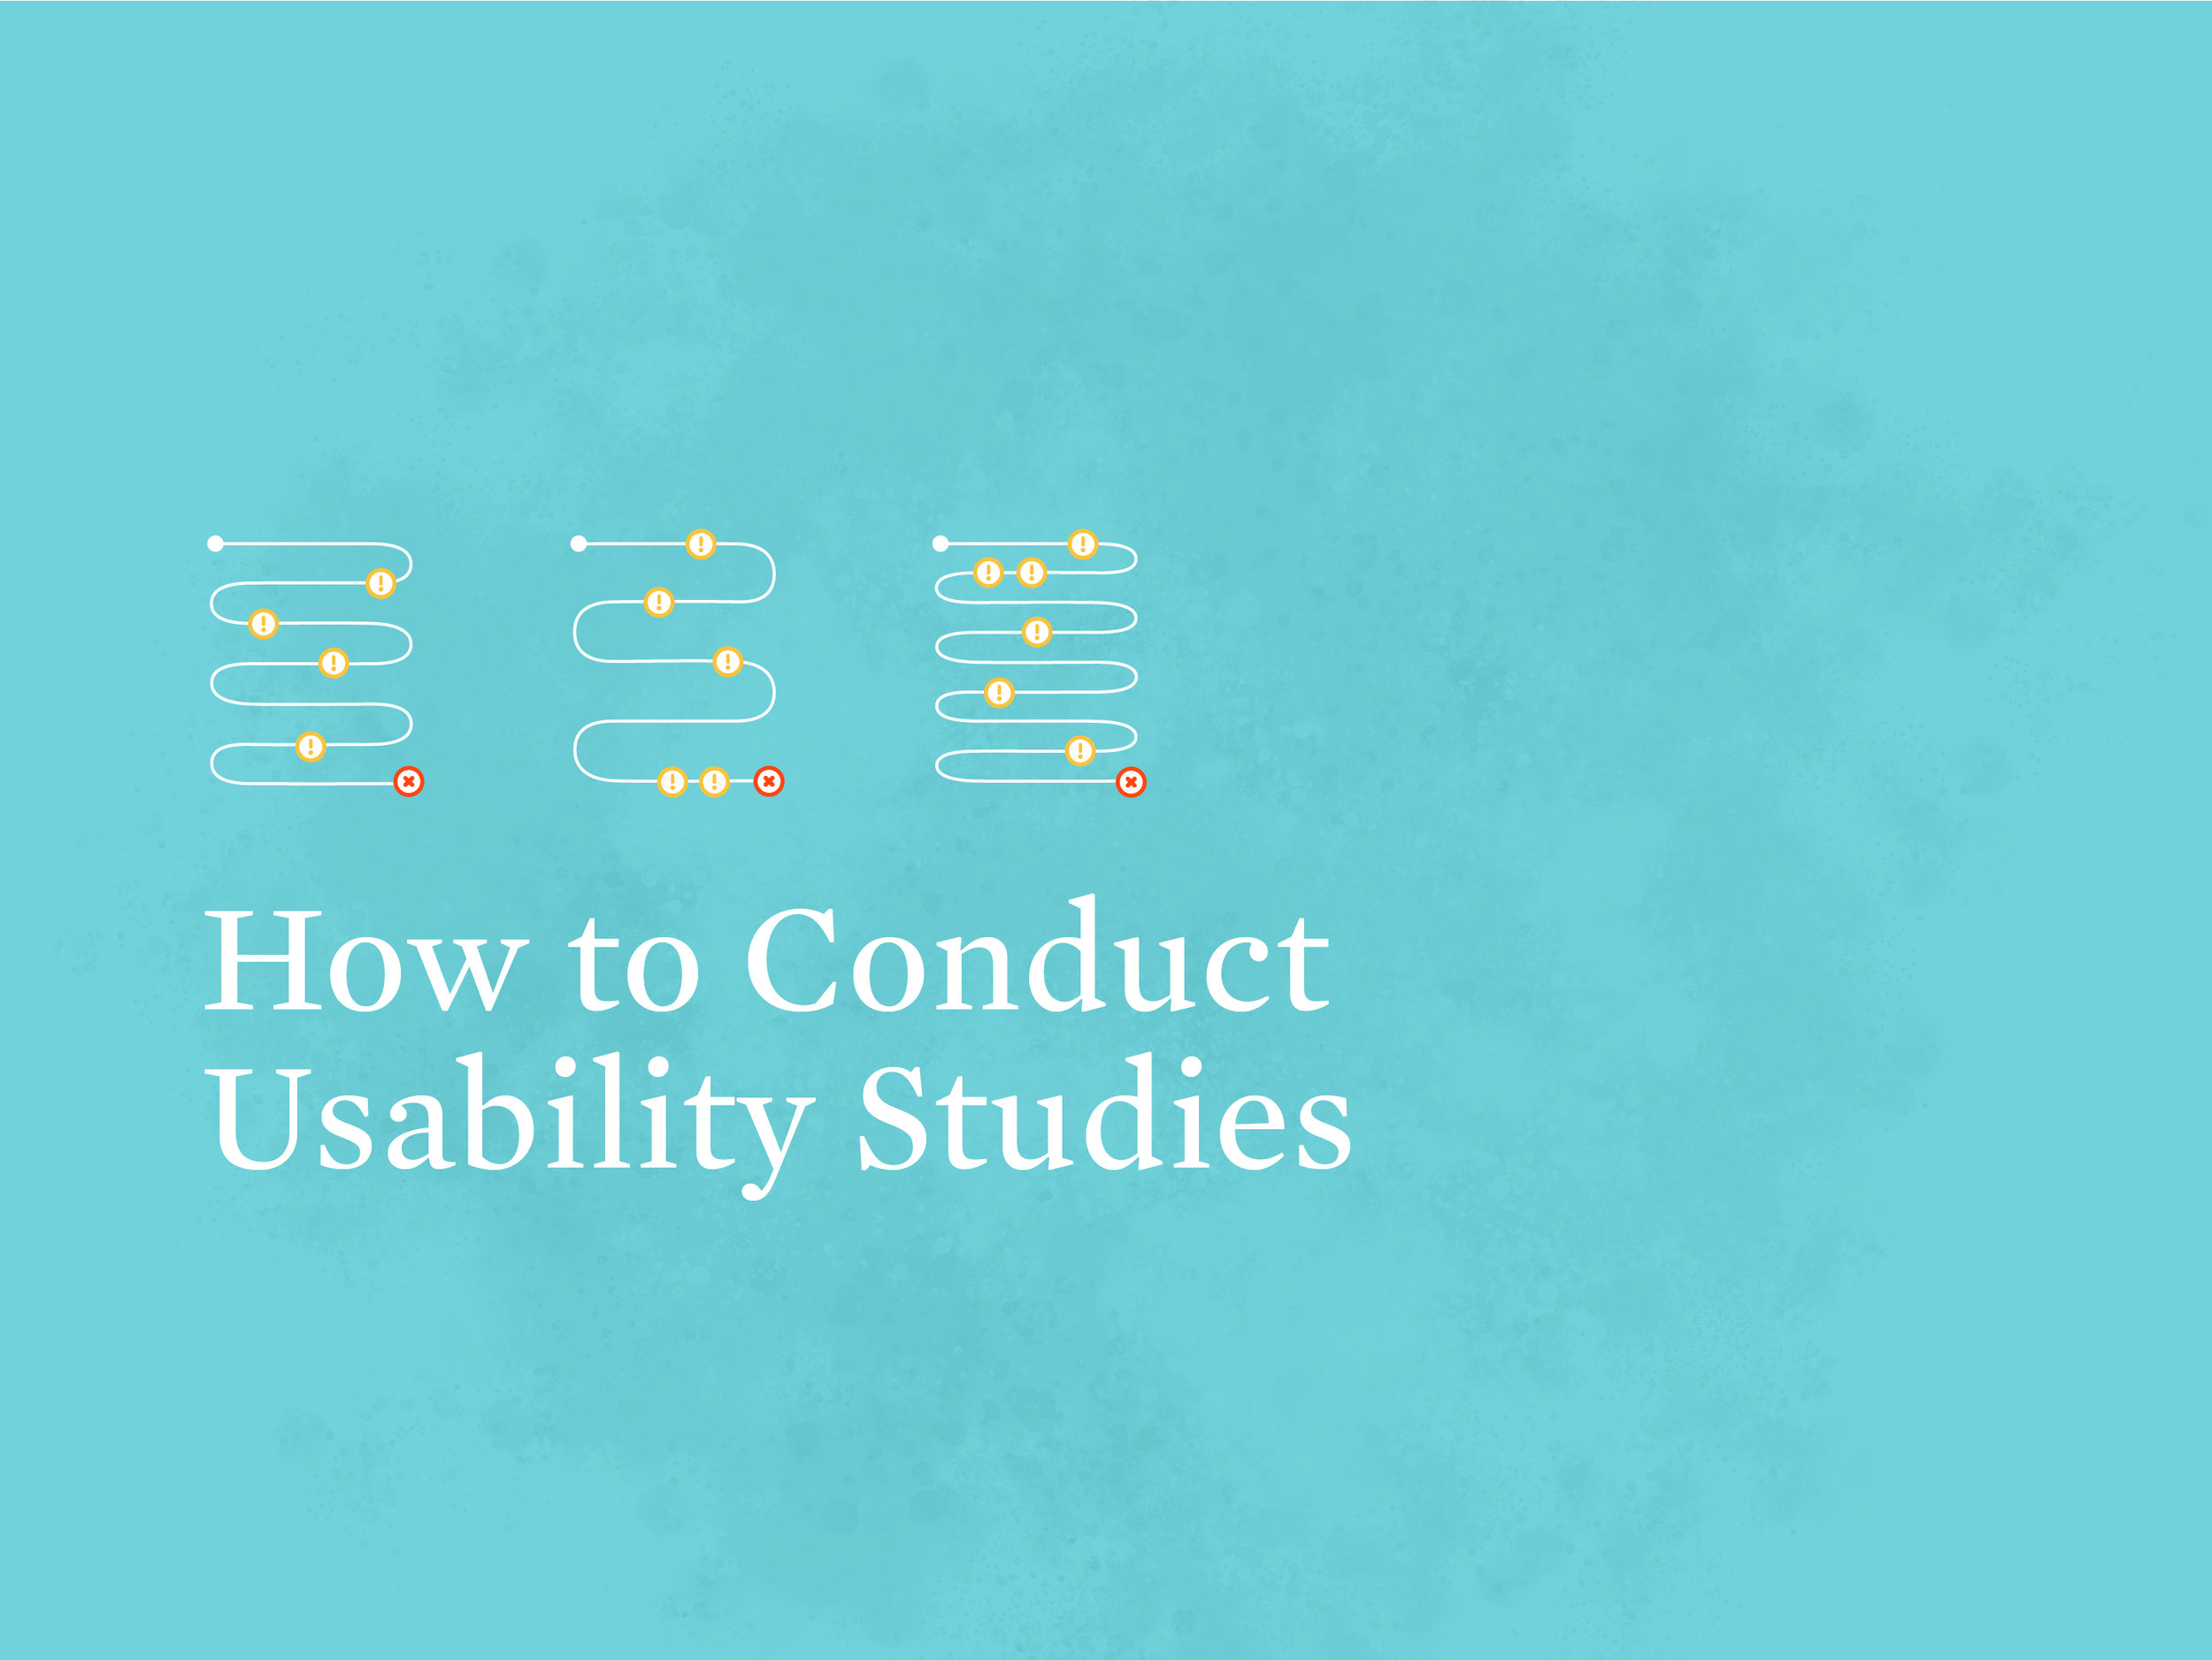 Workshop: How to Conduct Usability Studies